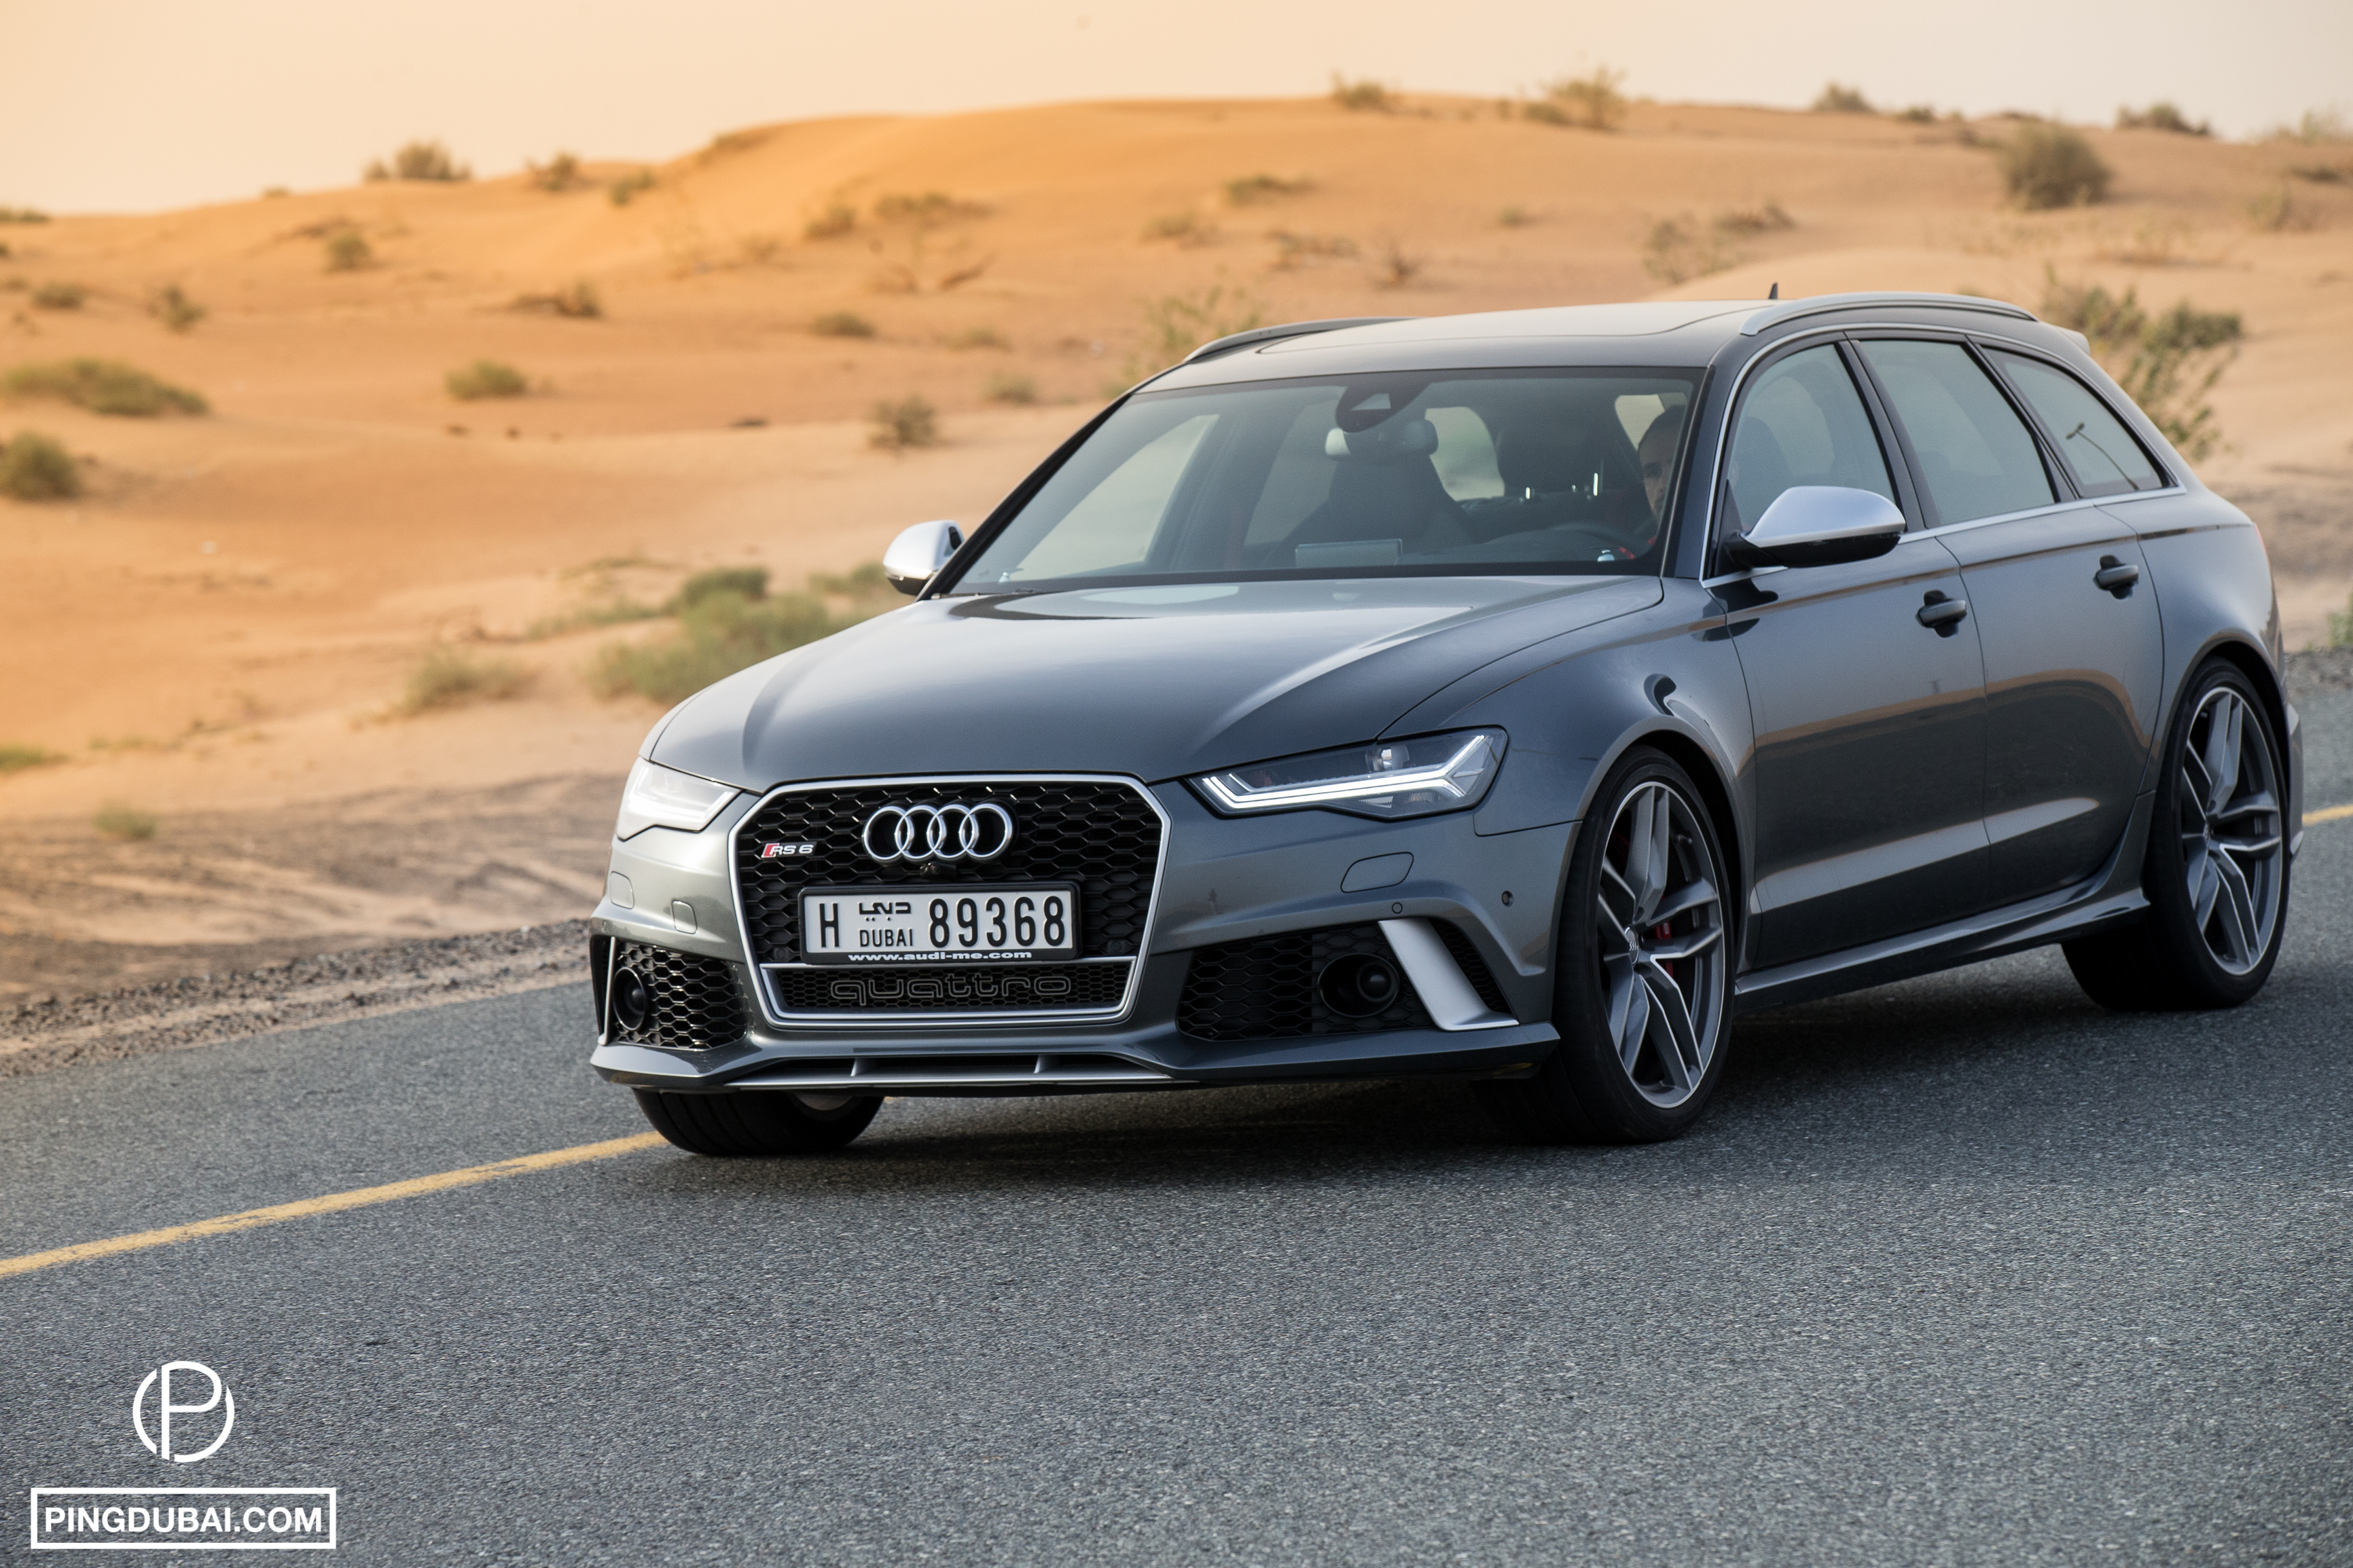 Noise When Accelerating >> 2015 Audi RS6 Avant: Family-Car Design, Supercar Performance - MrPingLife.com